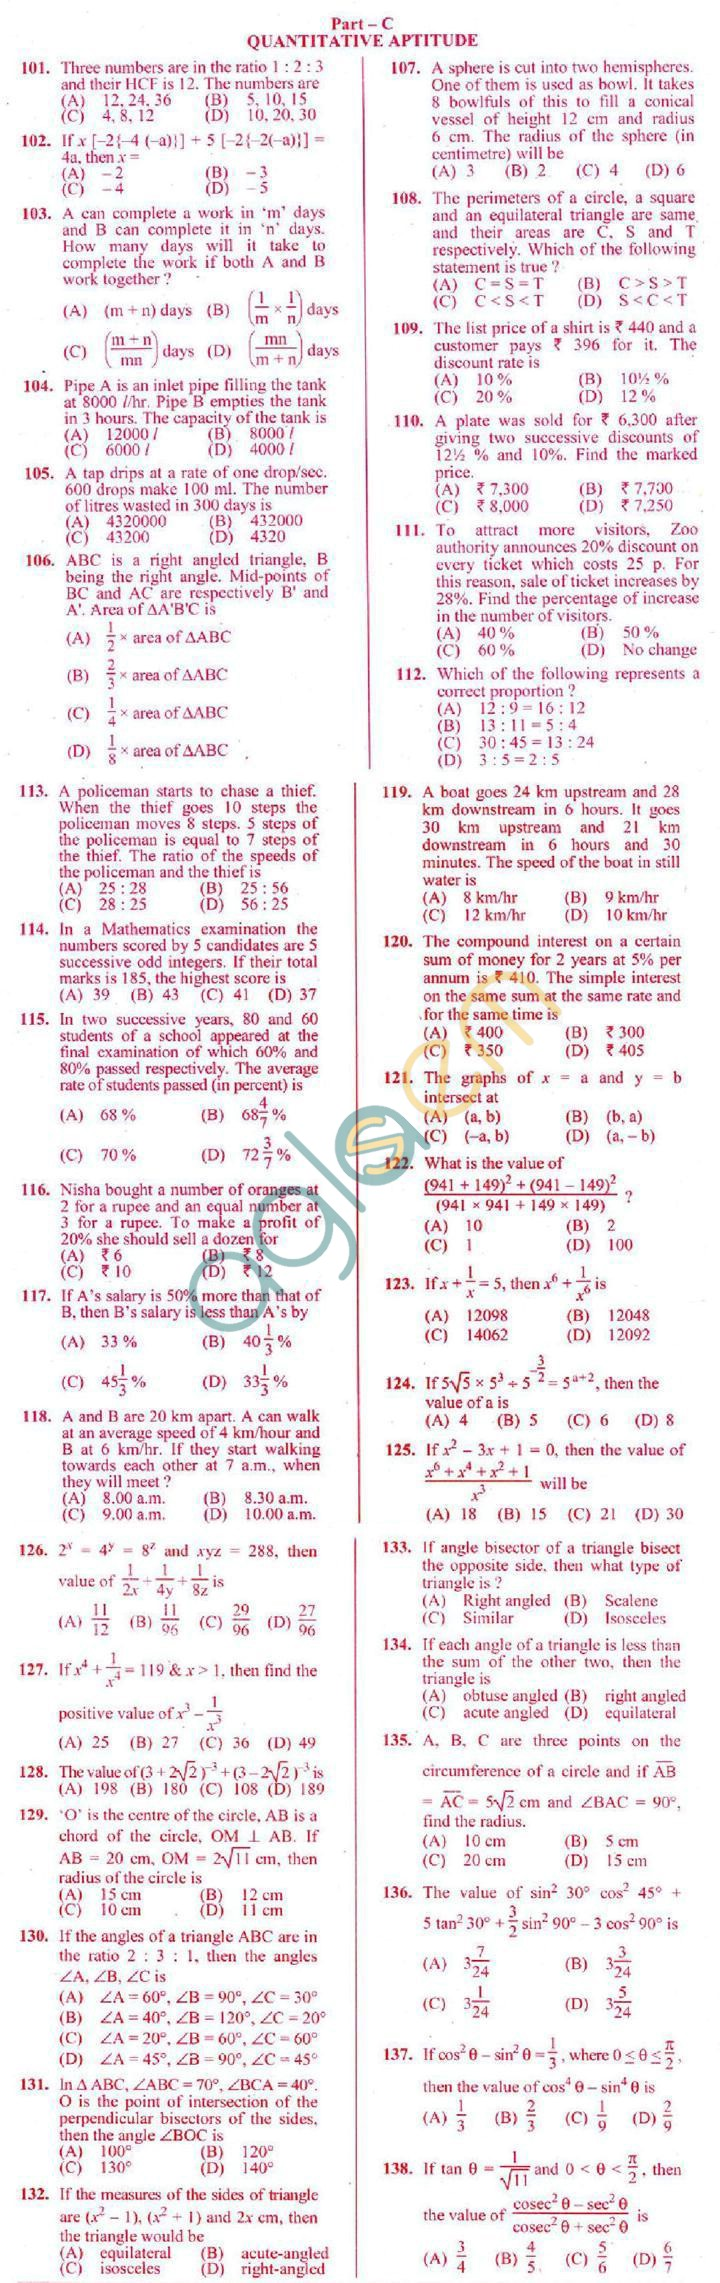 SSC CGL 2014 Tier I Question Paper